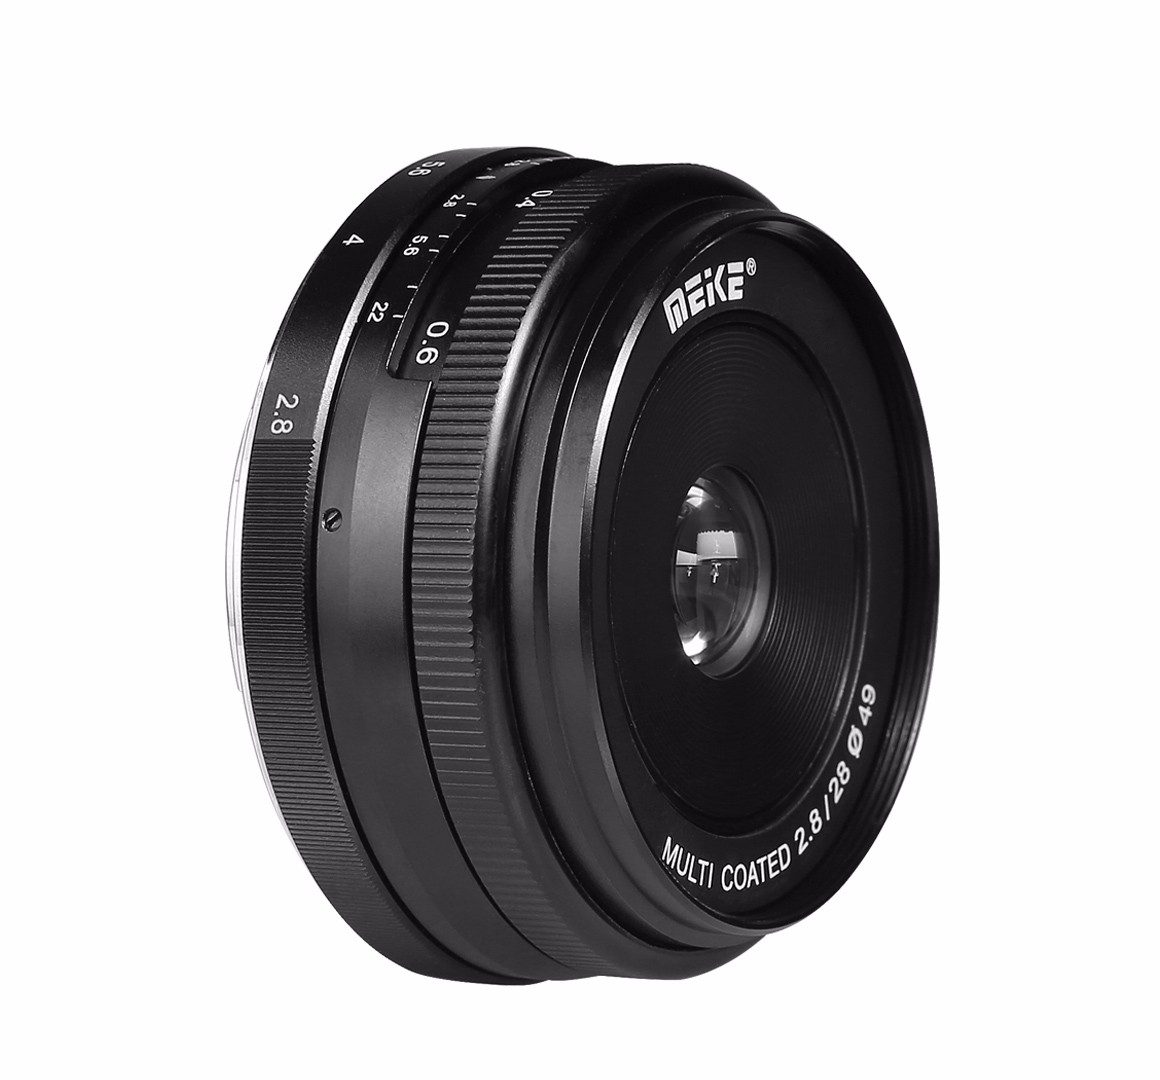 meike mk ef m 28 2 8 28mm f 2 8 fixed manual focus lens for canon rh aliexpress com Canon 50Mm Lens Canon 50Mm Lens